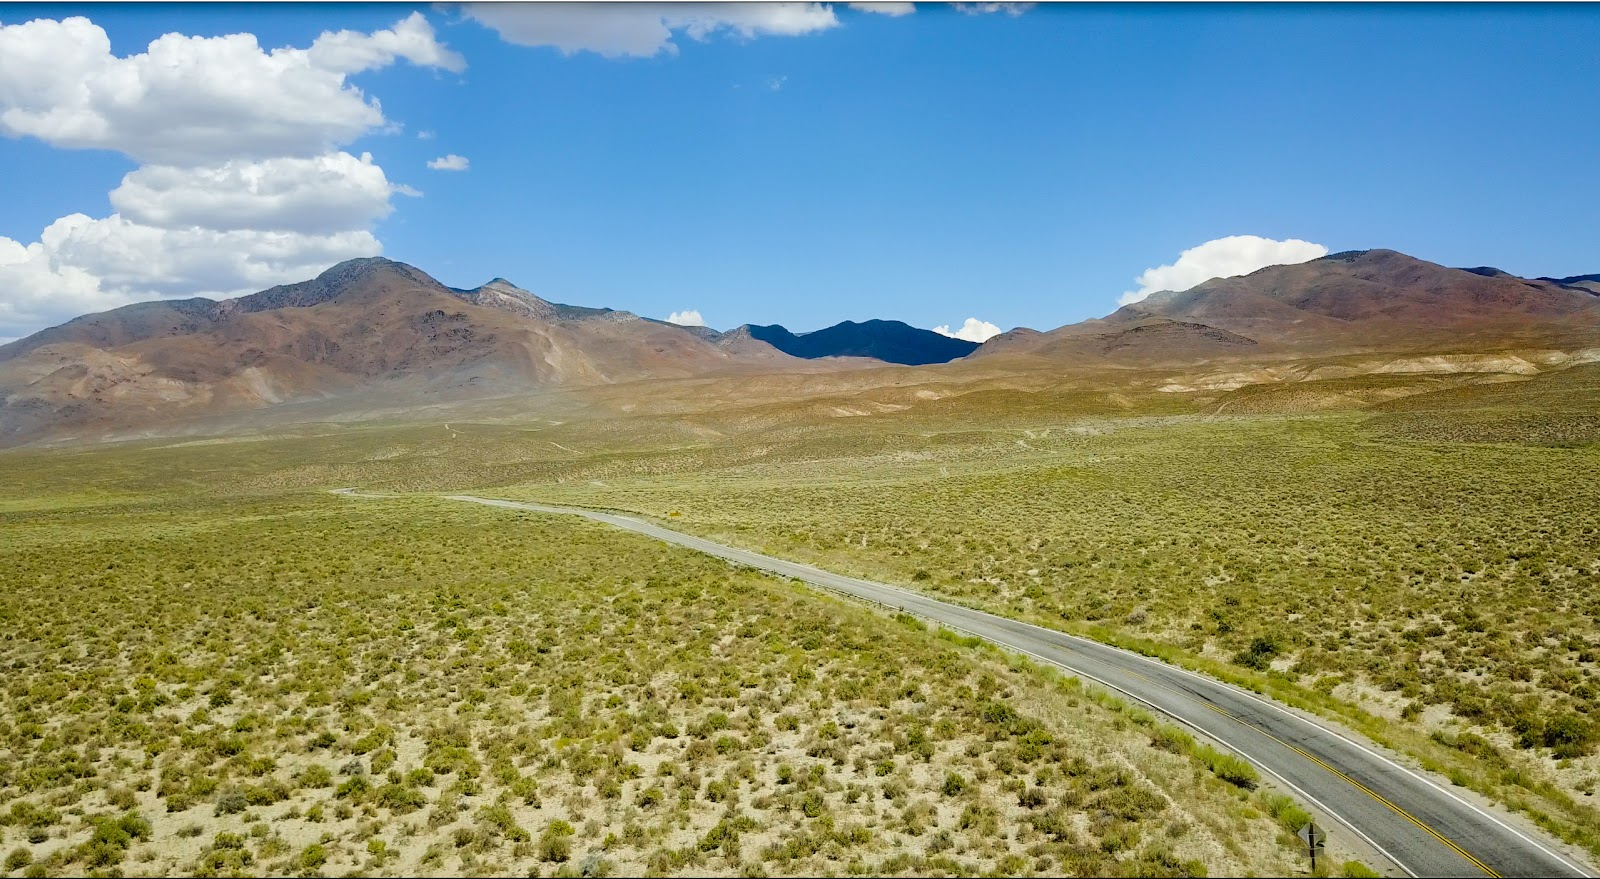 Cycling White Mountain - roadway, meadow, mountains and clouds